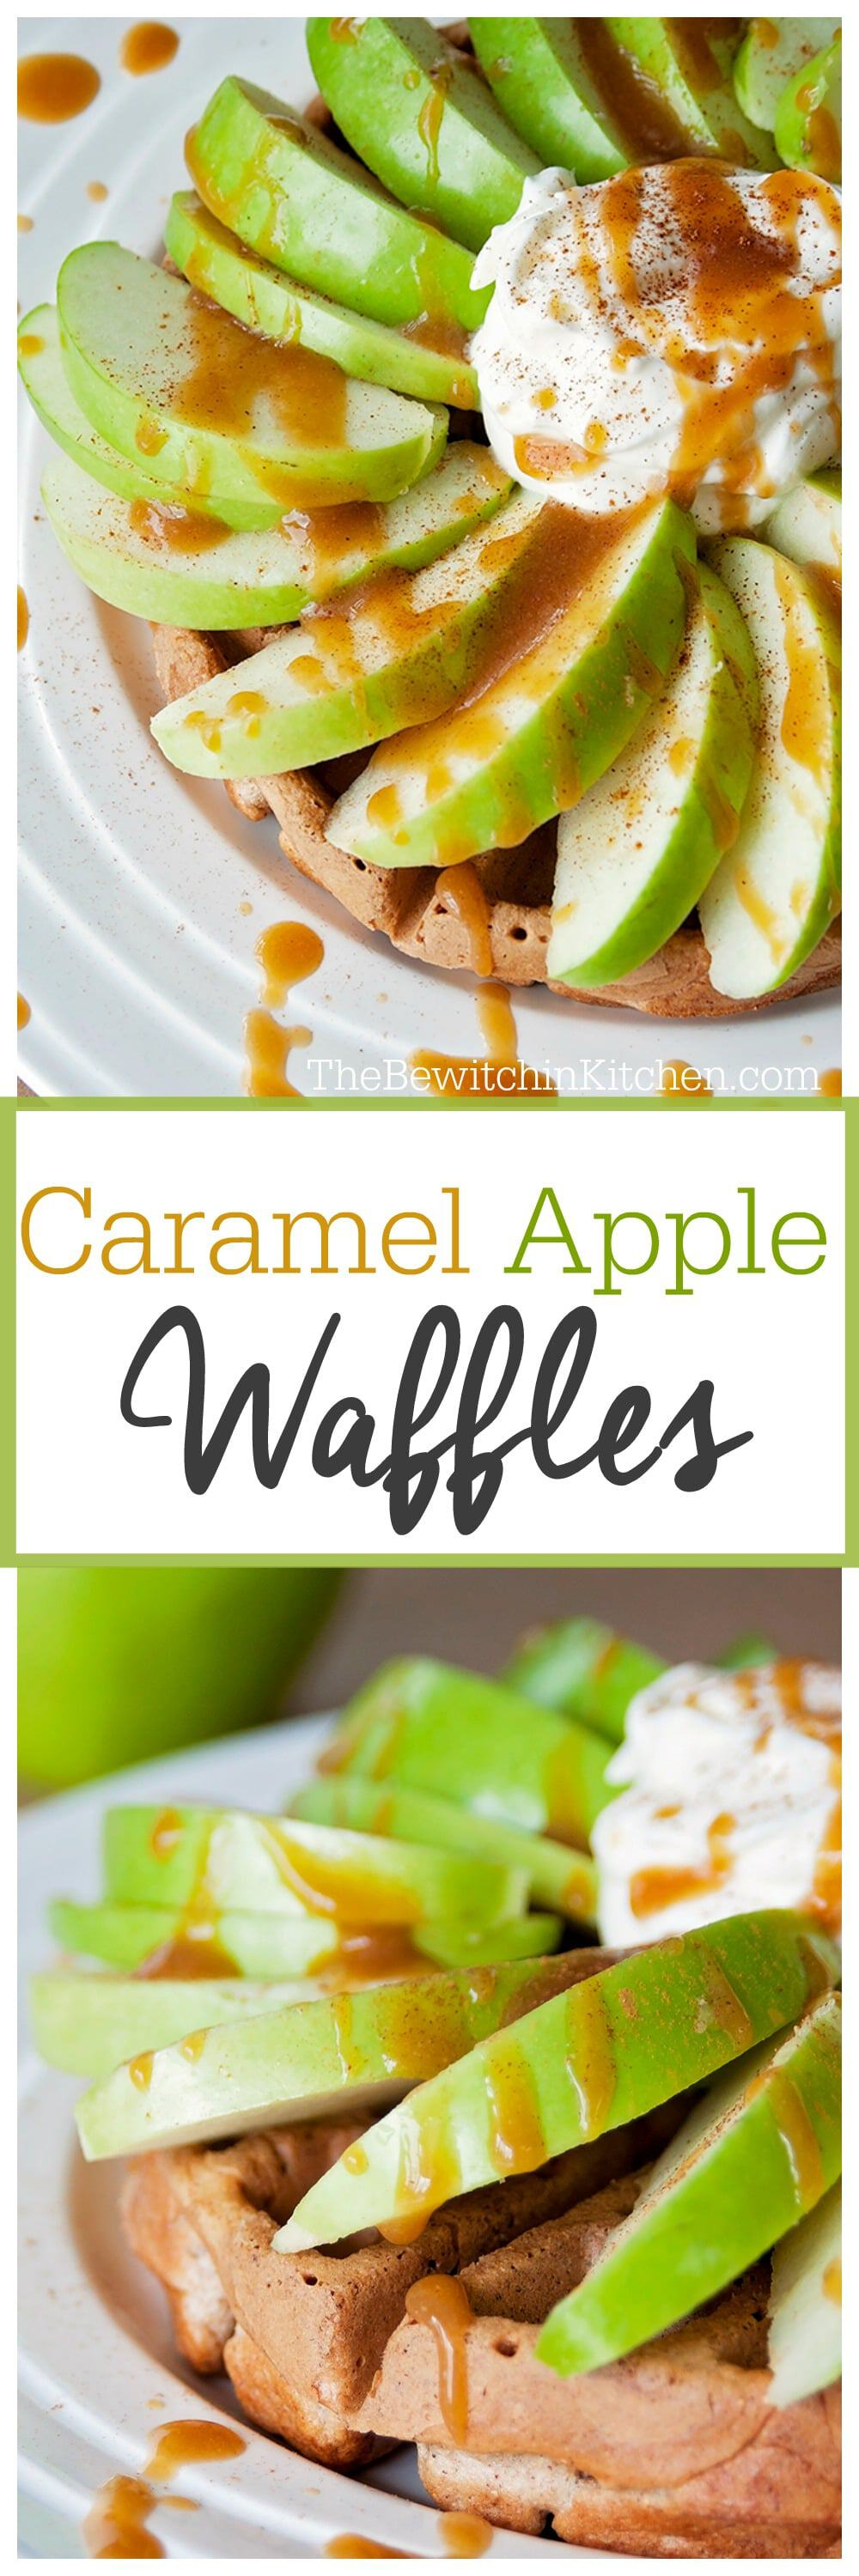 Caramel Apple Waffles - This low sugar, eggless waffle recipe is a delicious way to conquer your sweet tooth at breakfast, brunch, or as a snack. Make ahead and freeze to make school mornings a breeze. #thebewitchinkitchen #egglessrecipes #egglesswaffles #wafflerecipes #caramelappleapples #applewaffles